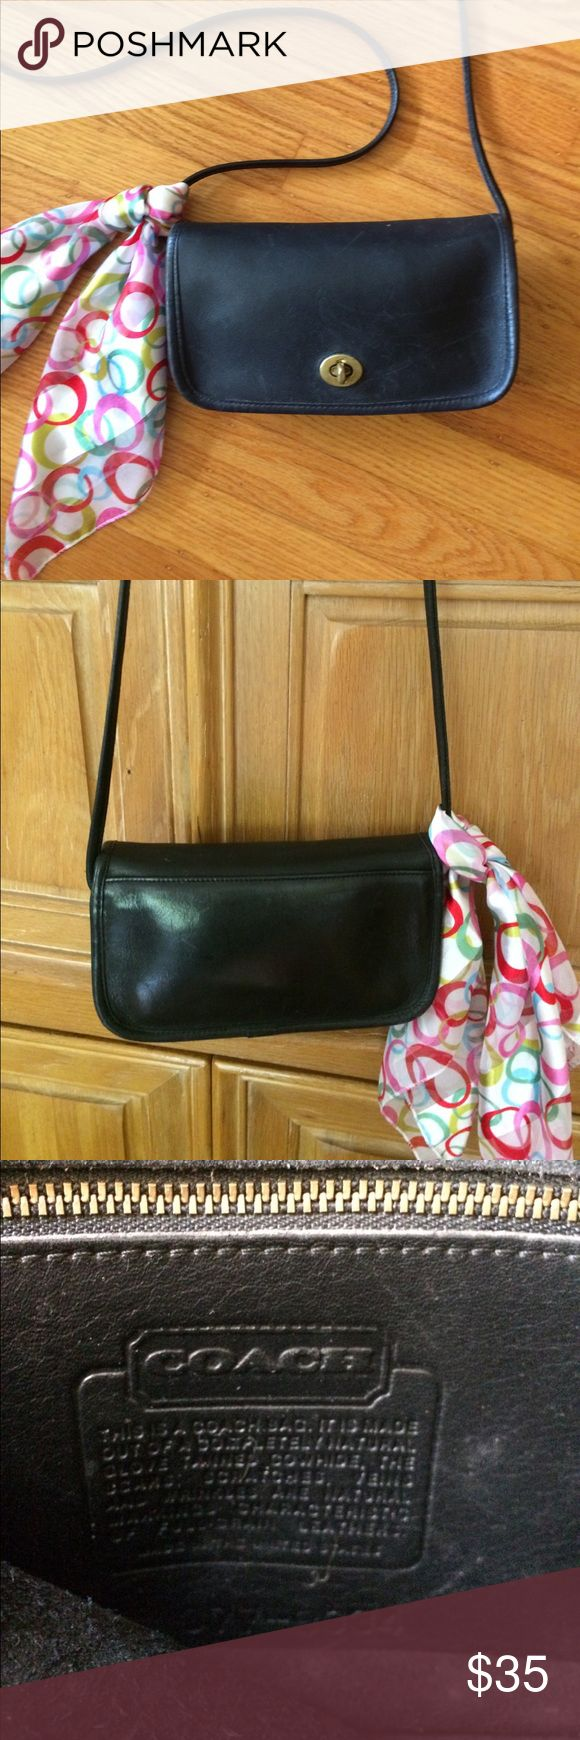 """👛 COACH - Authentic $ Vintage; Black Leather Bag! Authentic & Vintage Black COACH, Black Crossbody Purse. Perfect for your everyday, """"hands-free"""" use. In good, vintage condition. Inside zippered pocket. Plenty of room for your IPhone, Make-up, Car Keys, Mula + More! COACH ID No. is: 077-8034. Can be spruced up with black shoe polish/or leather polish, if desired. Scarf not included. Thank you for shopping here! Please check out other items in my closet and bundle to save 💰. I 💖 my Posher…"""